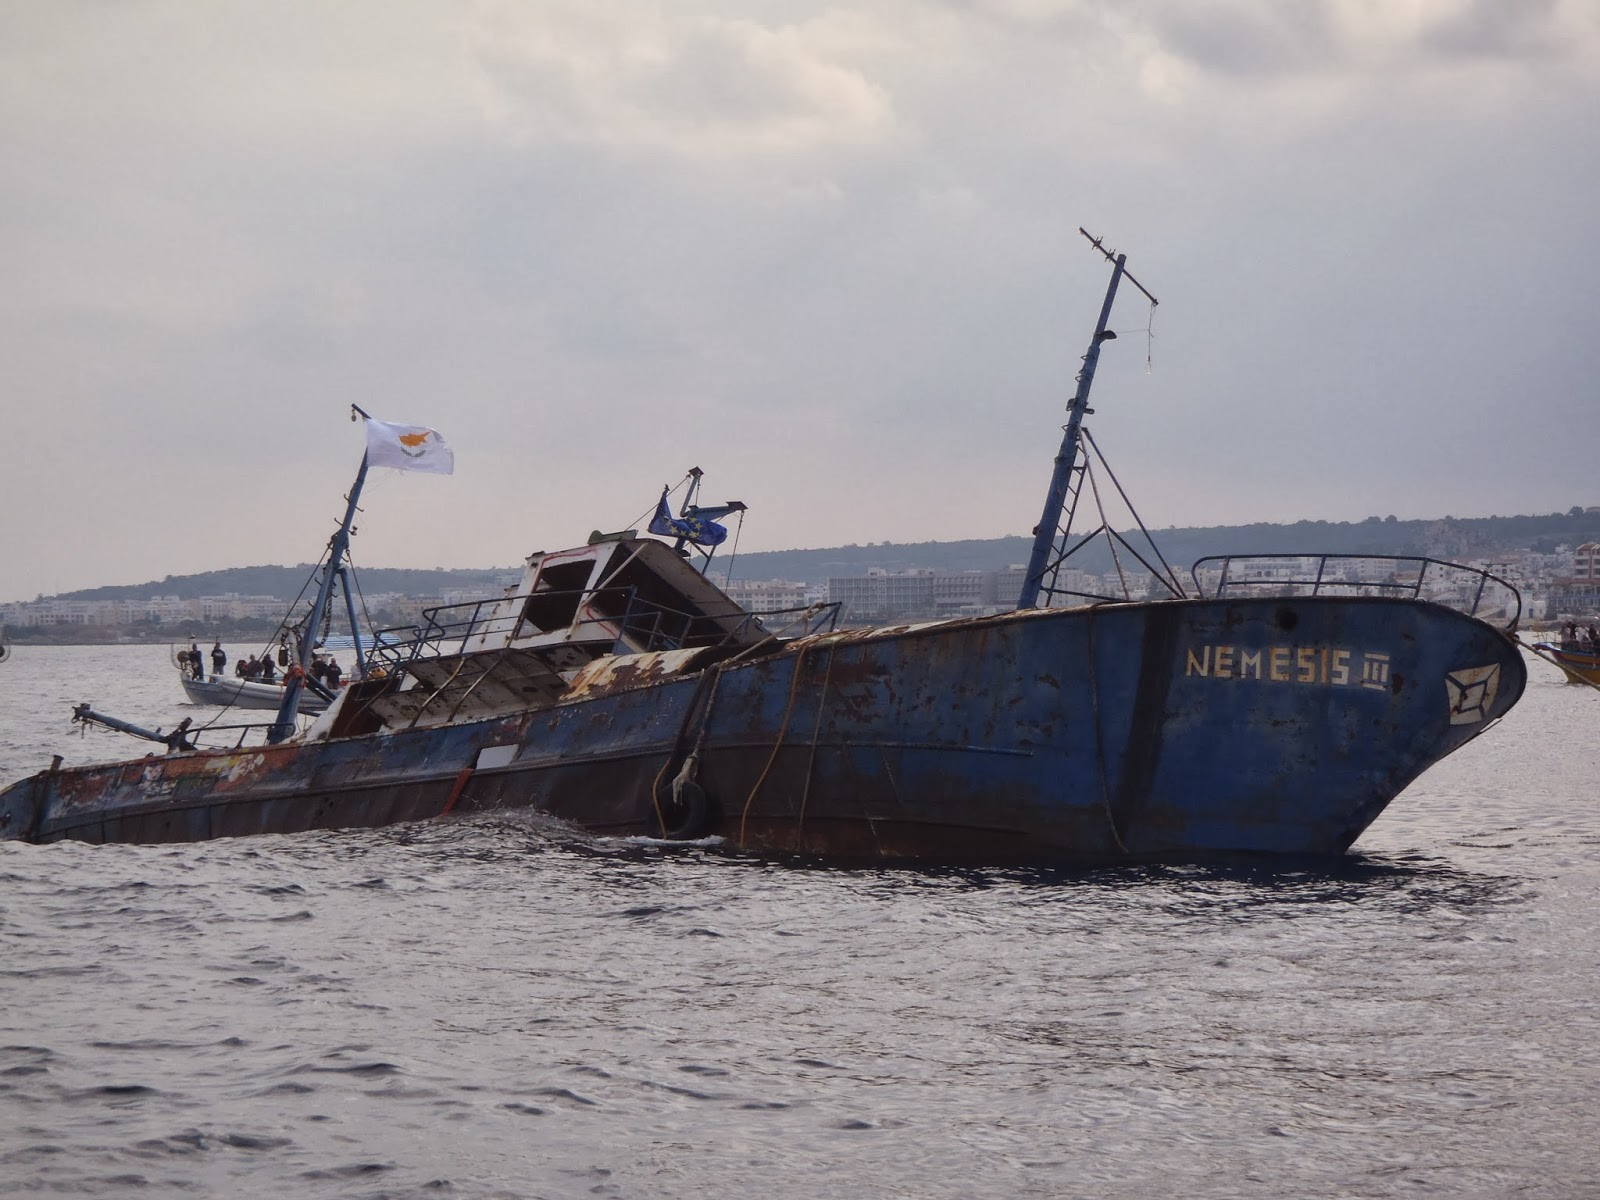 Protaras' second artificial reef in Cyprus